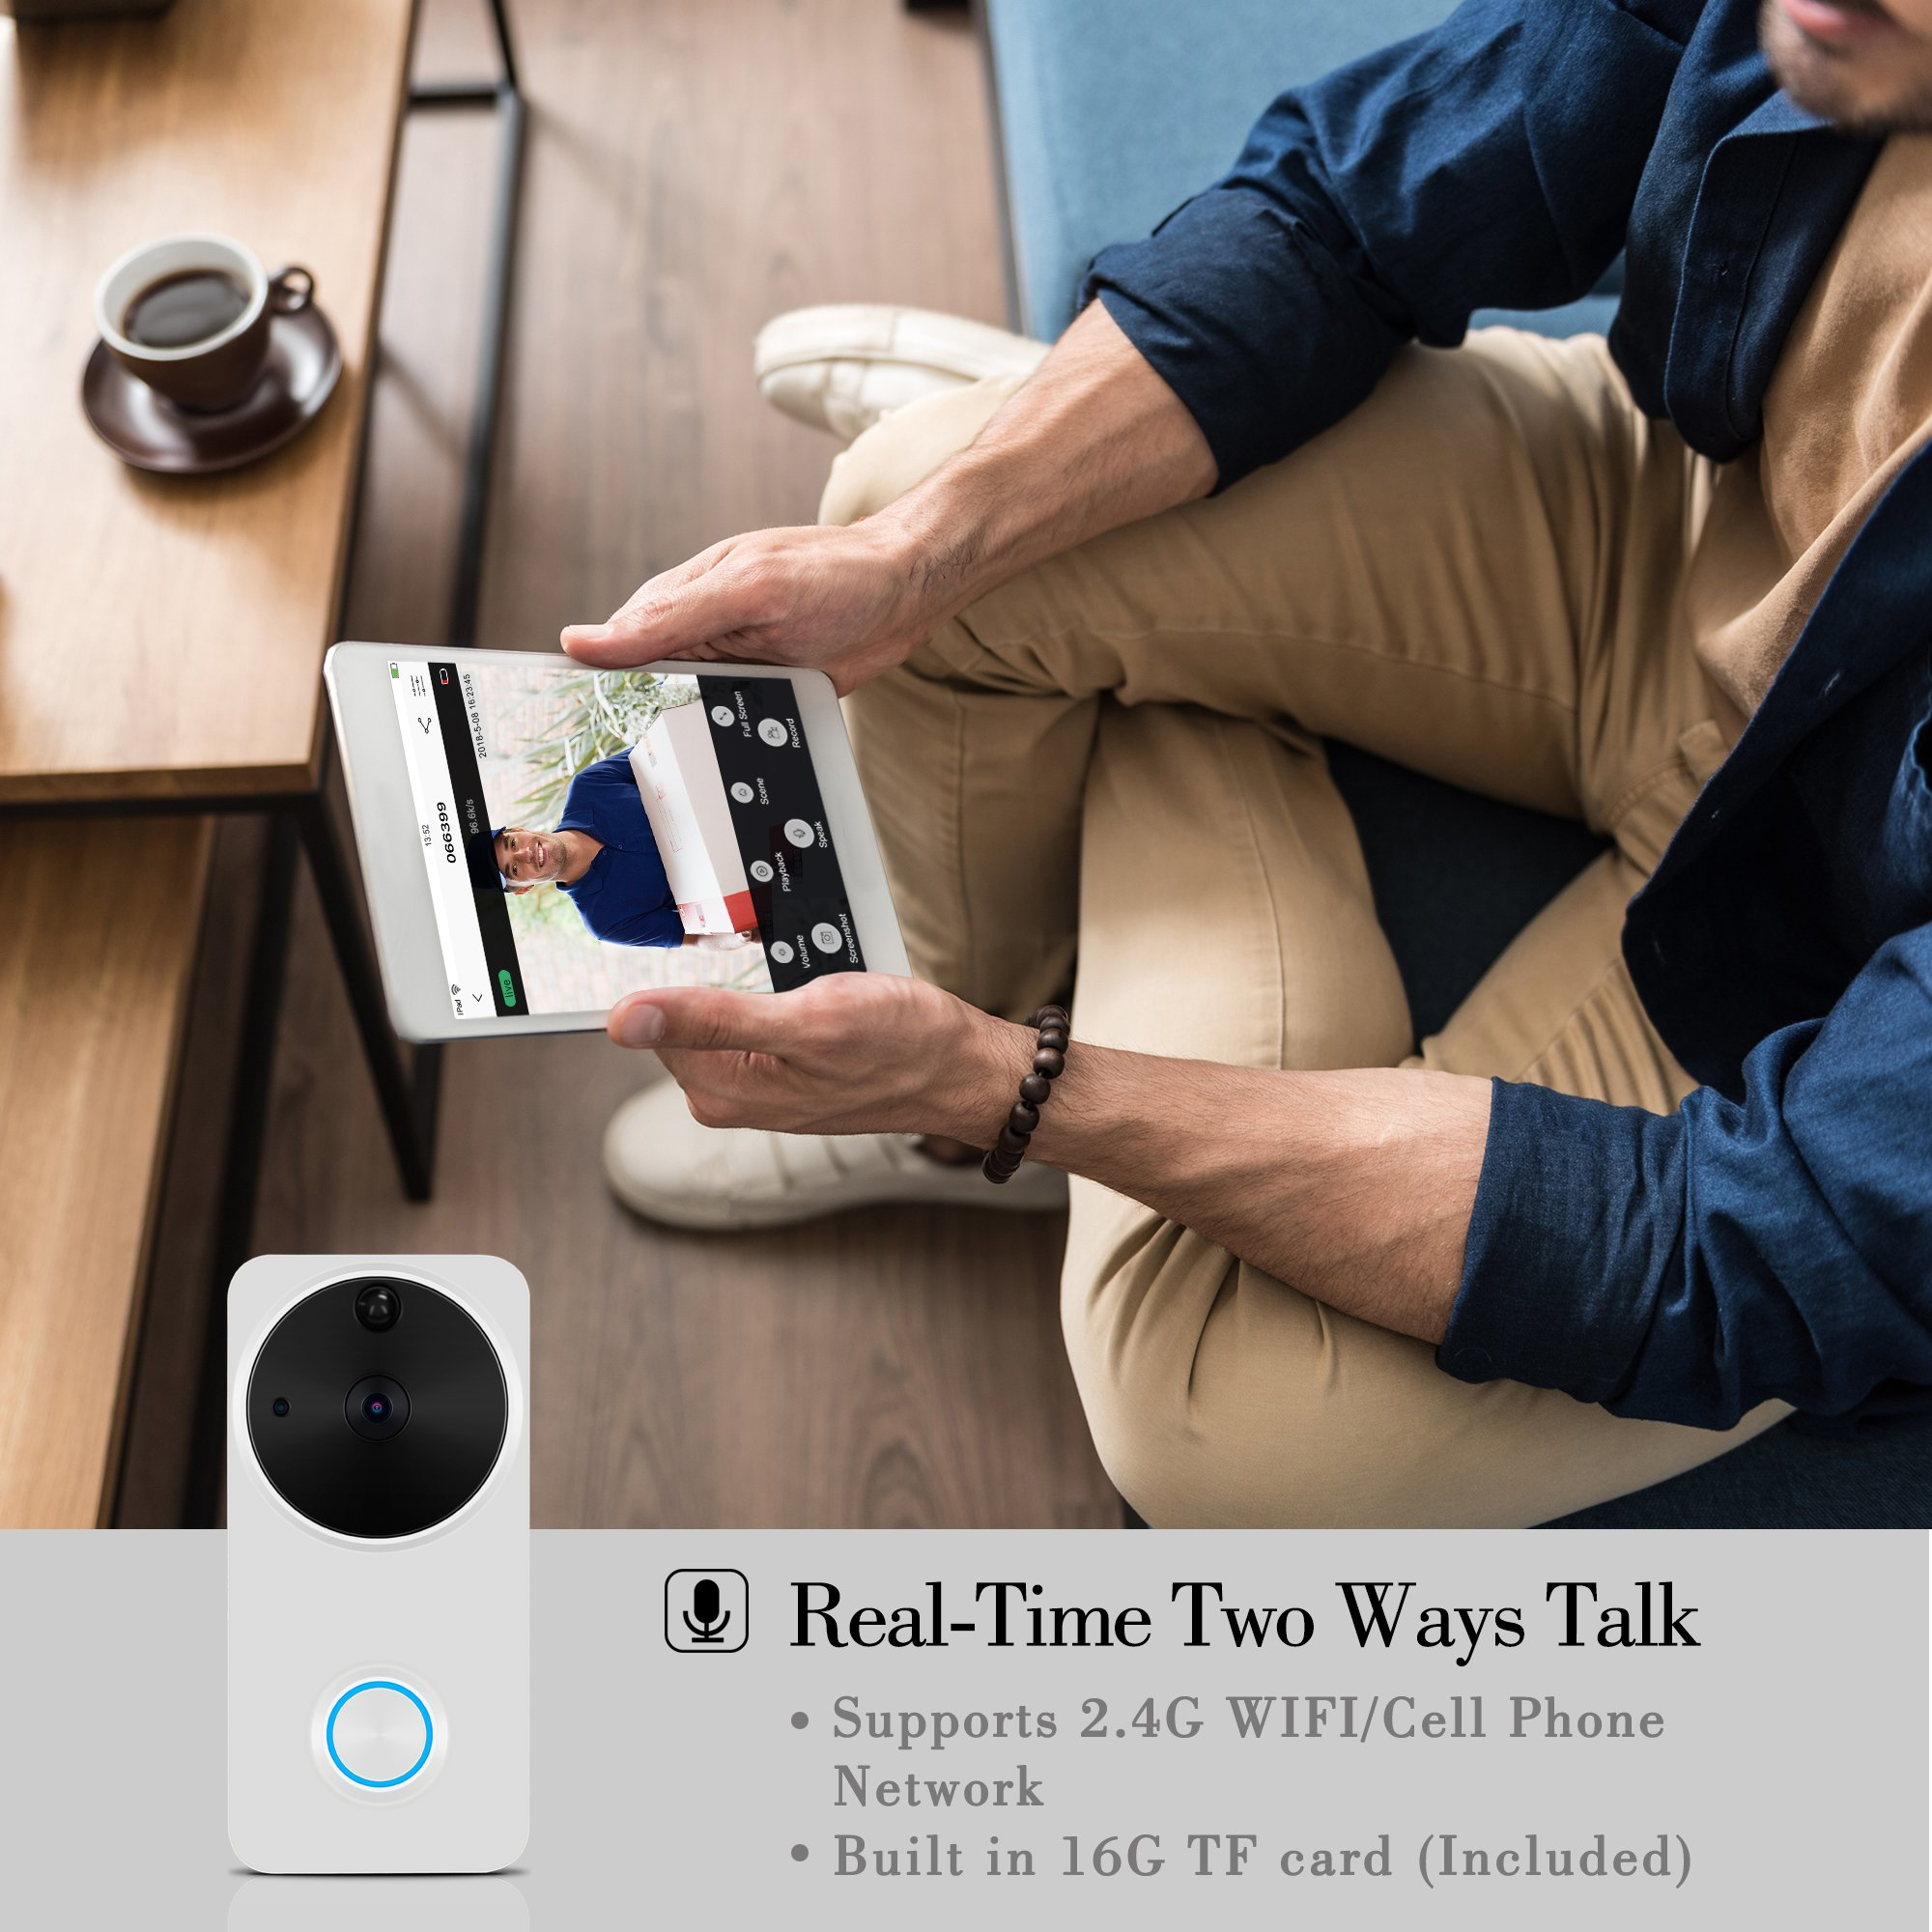 Video Doorbell Wireless - HEIHEI WiFi Smart Door Bell Kit, 720P HD Video, 2-Way Audio, Motion Detection, IR Night Version, Waterproof Home Camera W/2-Battery Built in 16G Card for IOS/Android - White by HEIHEI (Image #2)